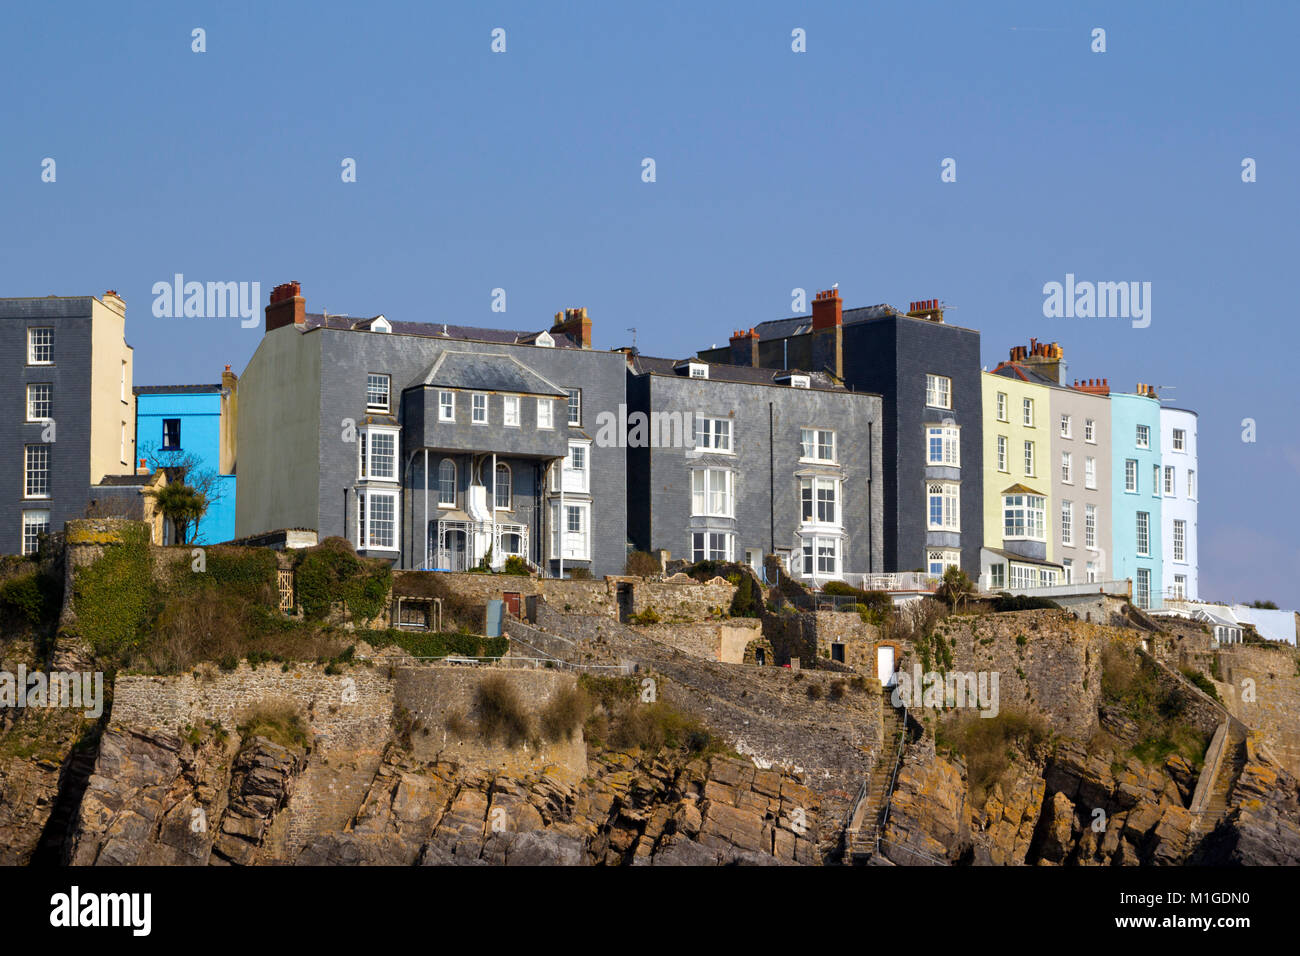 Immagini Case Grigie : Grey painted house immagini grey painted house fotos stock alamy